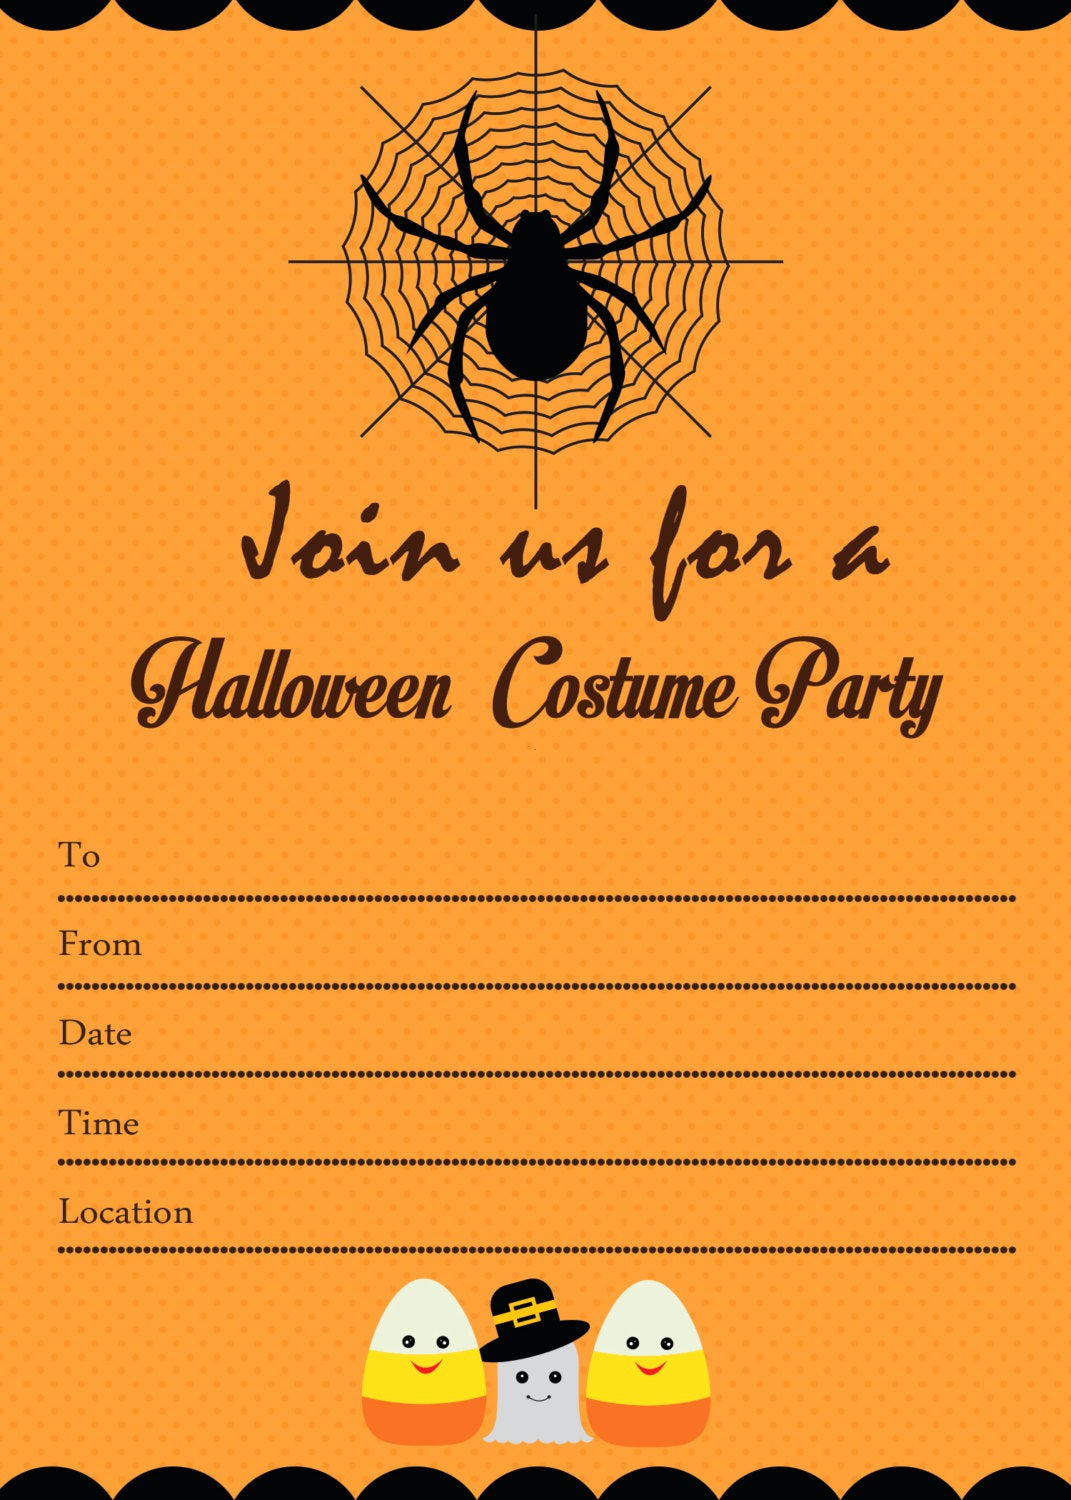 Free Halloween Invitation Templates Inspirational Spooky Halloween Costume Party Invitation by Candybeedesigns